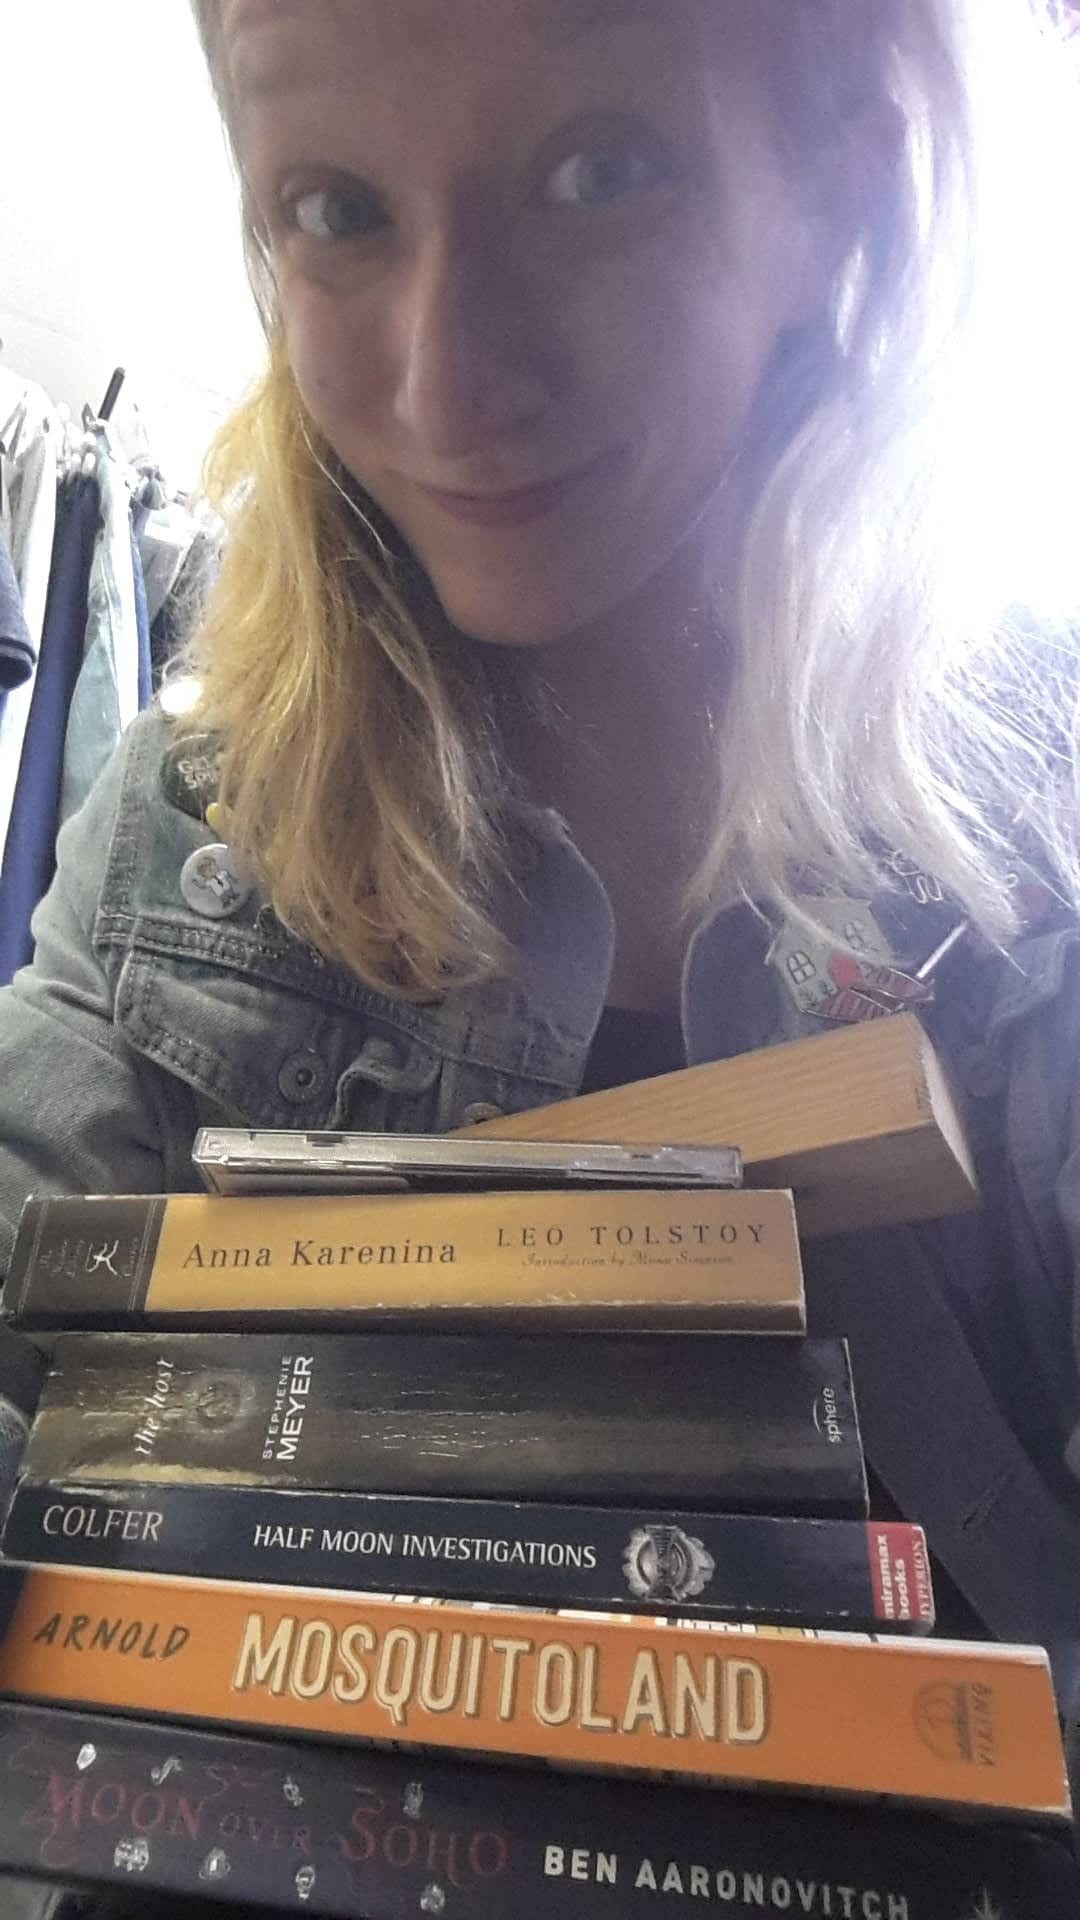 A girl grins while clutching a stack of books. This is a selfie.